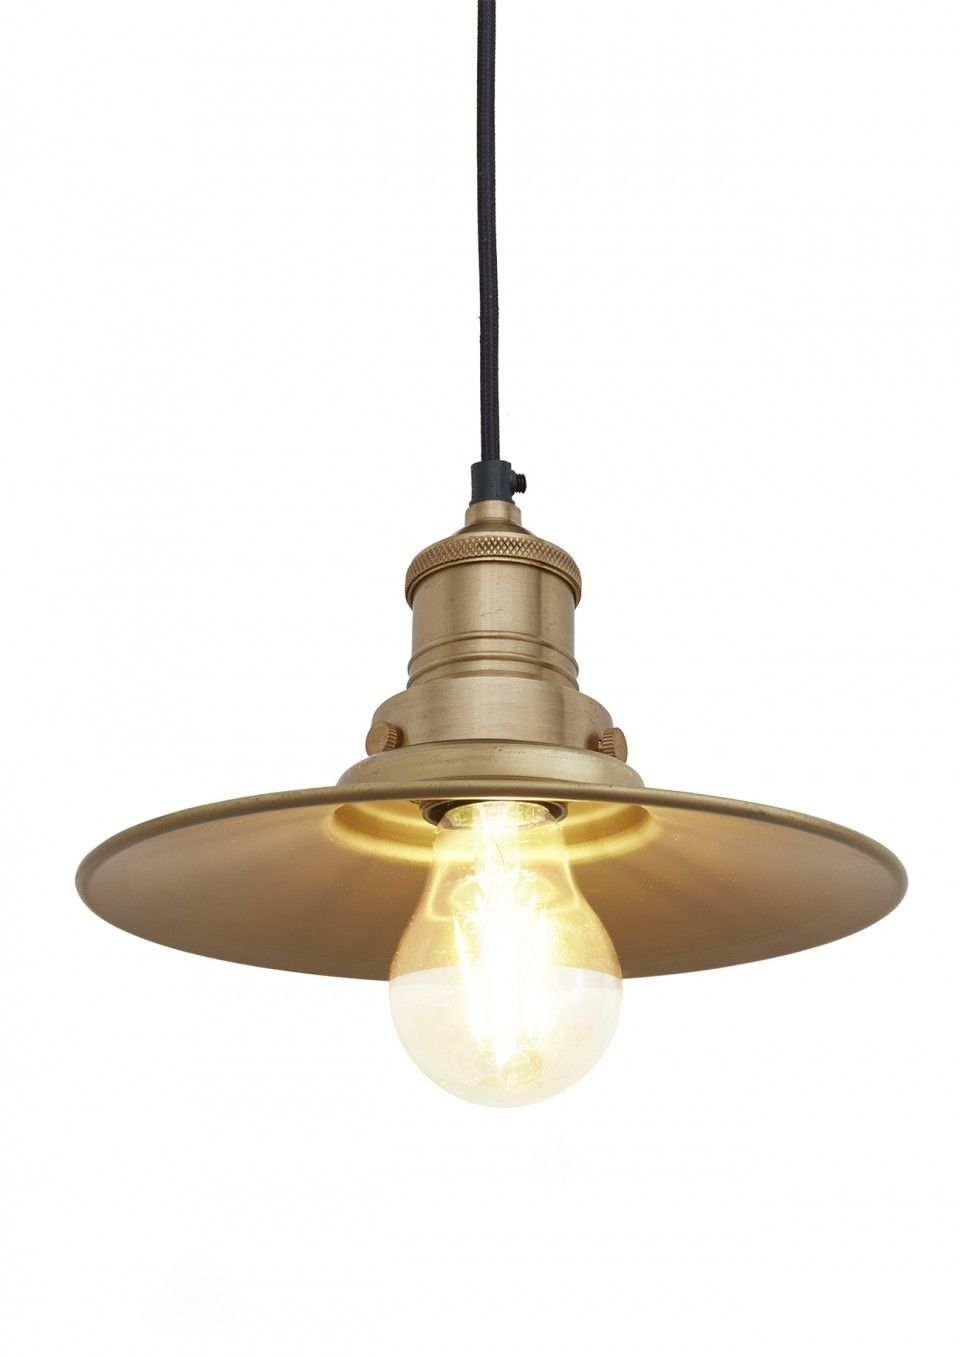 This stylish brooklyn antique flat industrial pendant light by